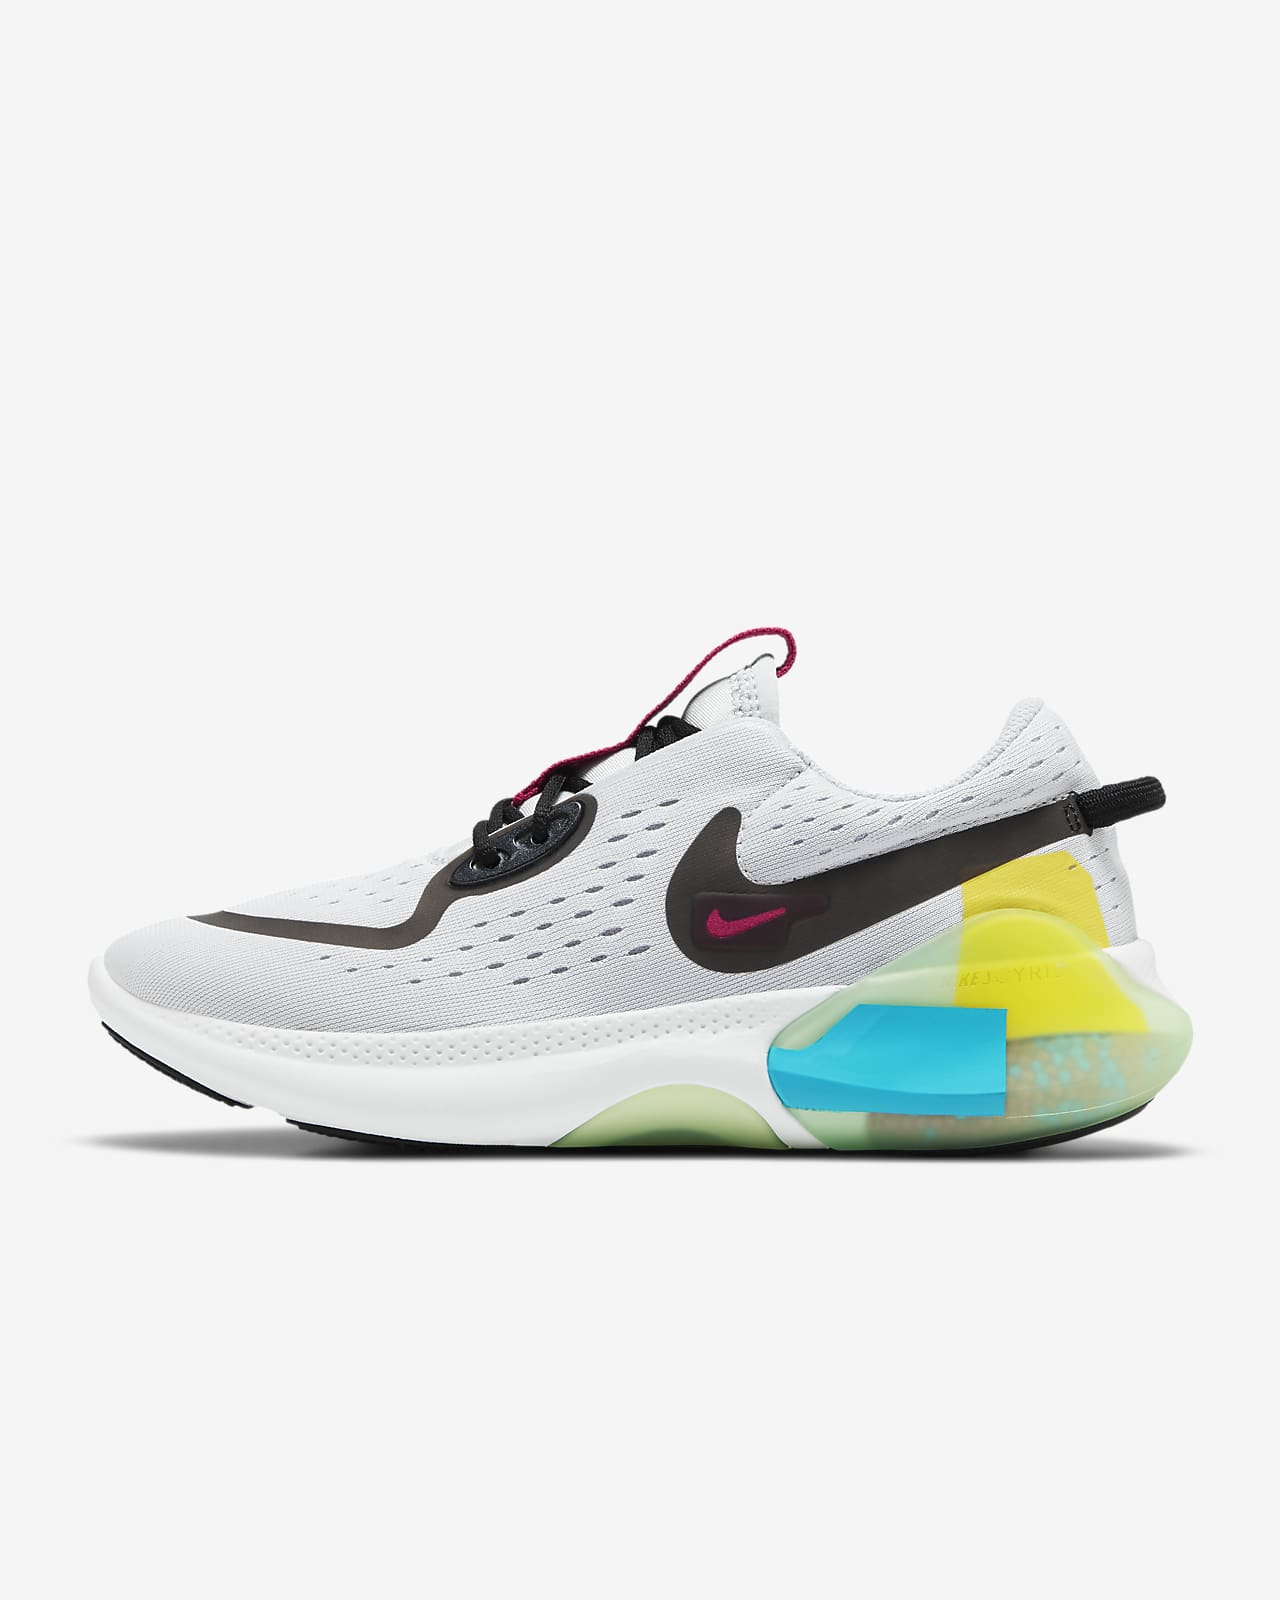 Nike Joyride Dual Run Premium Women's Running Shoe